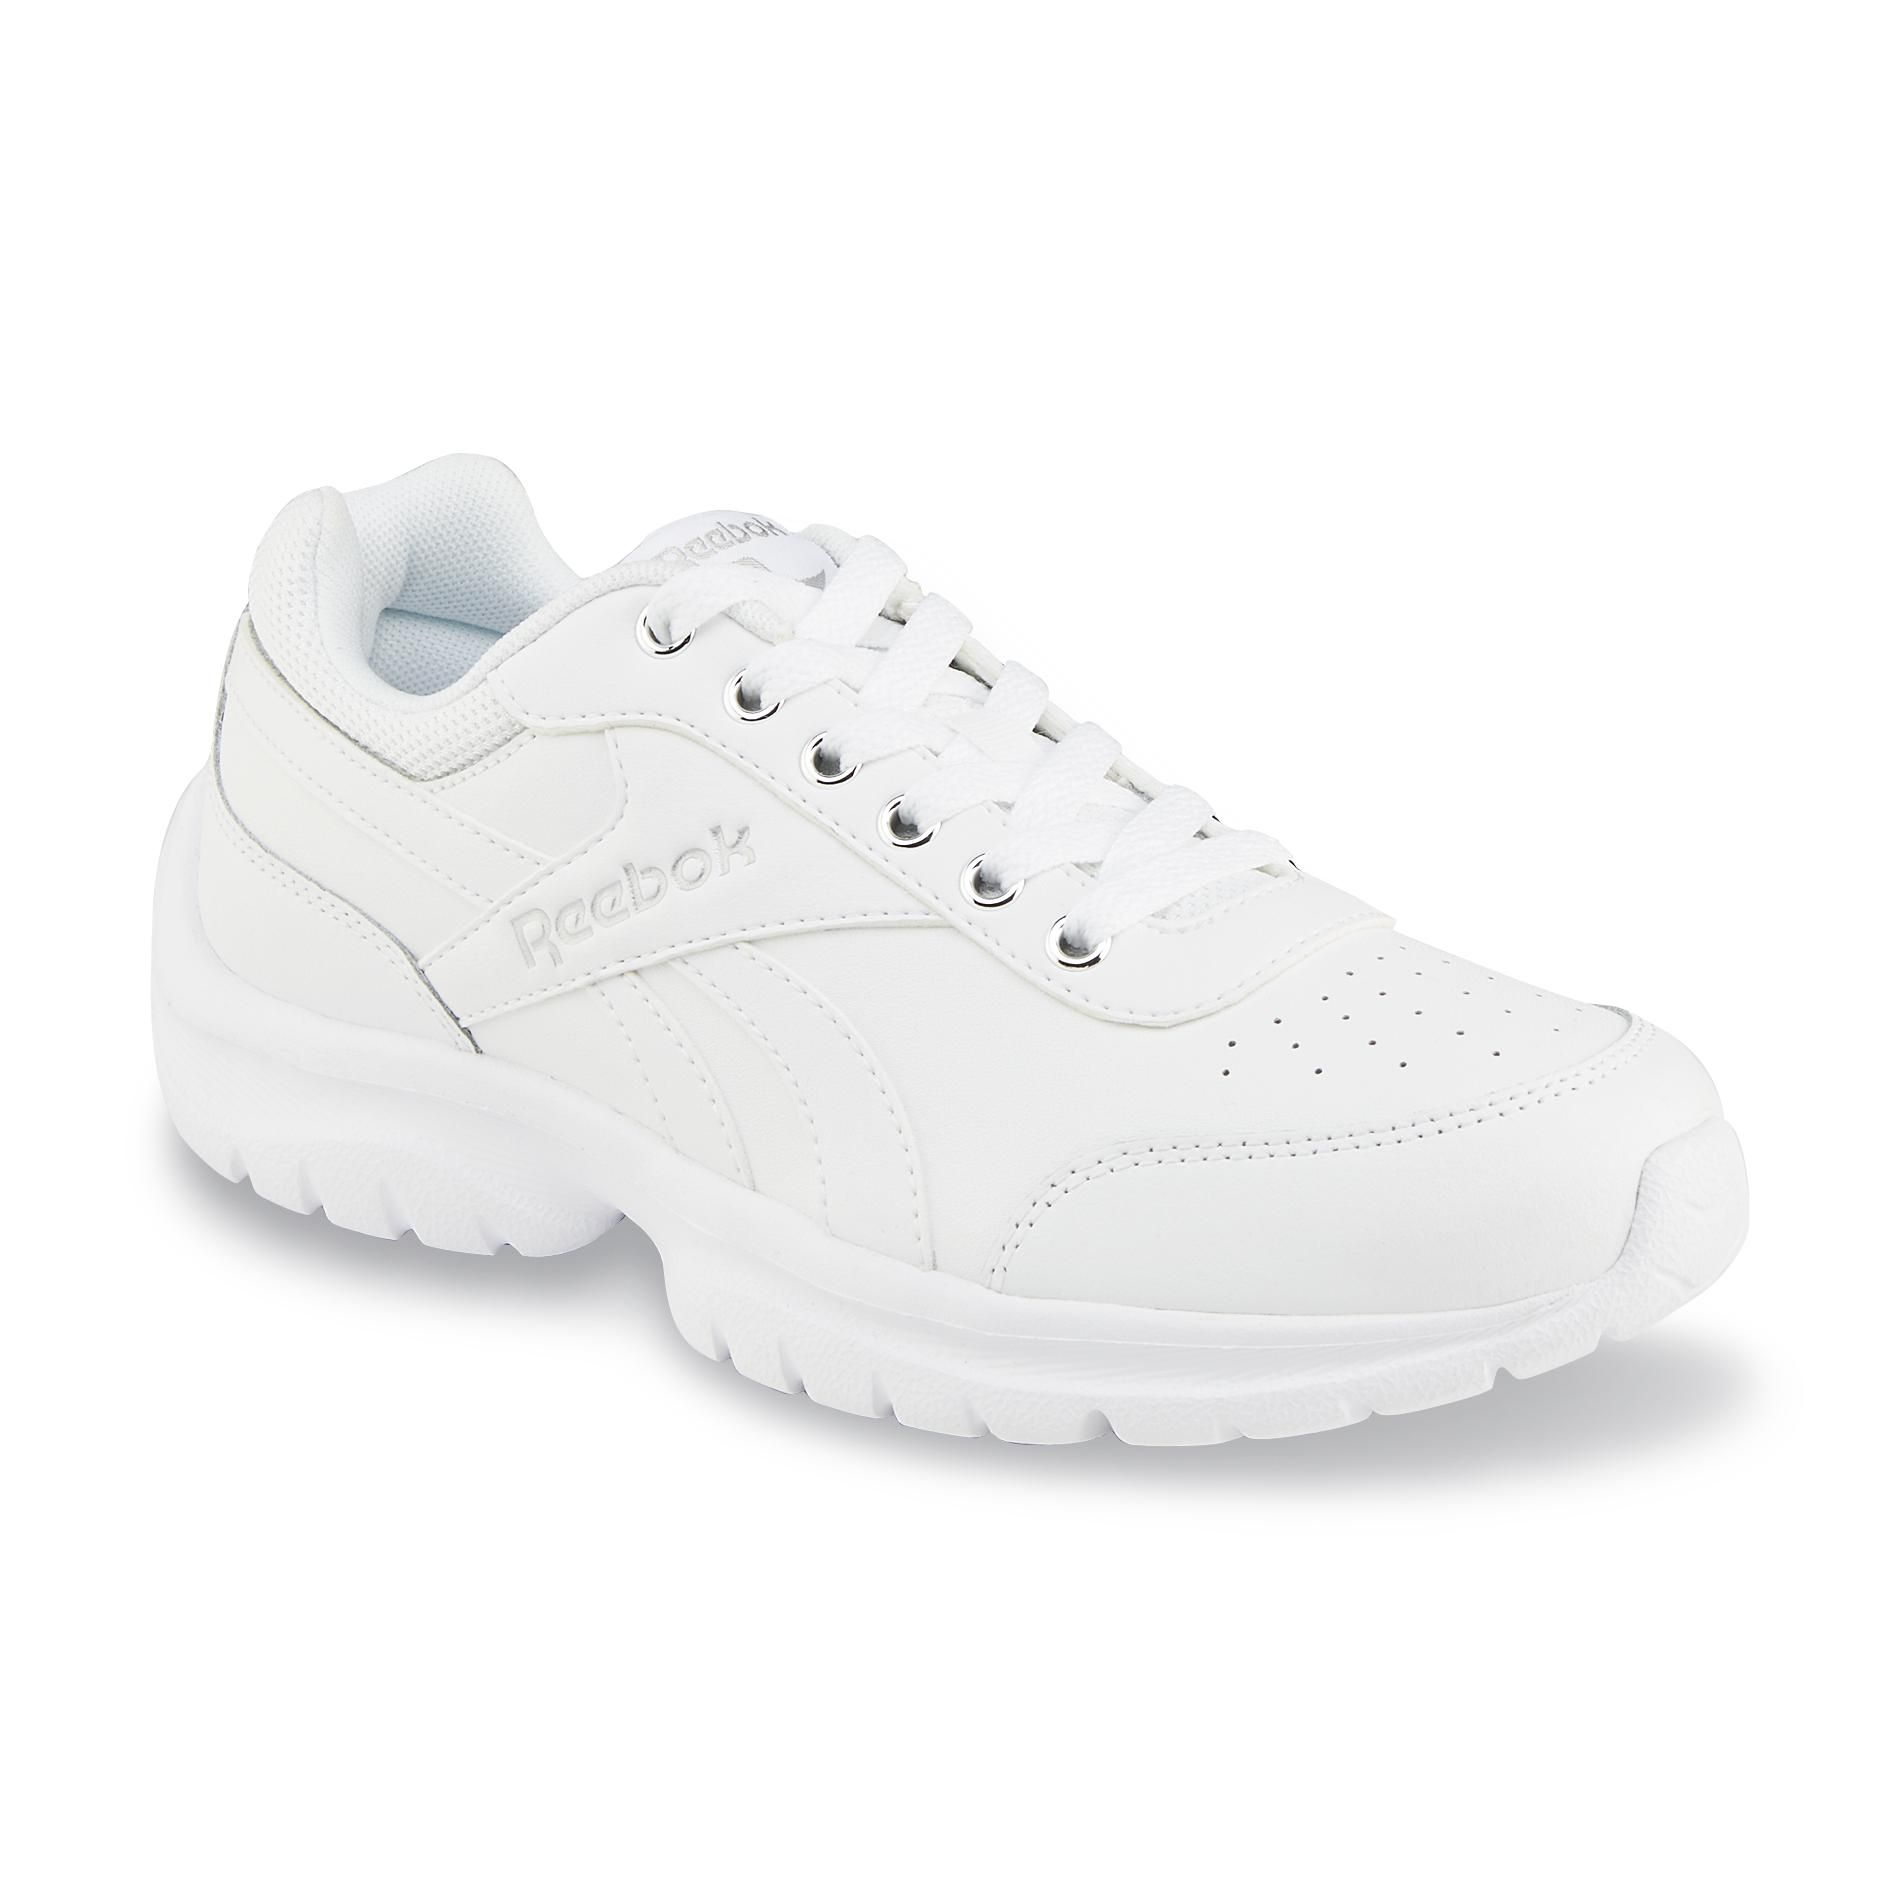 solid white tennis shoes